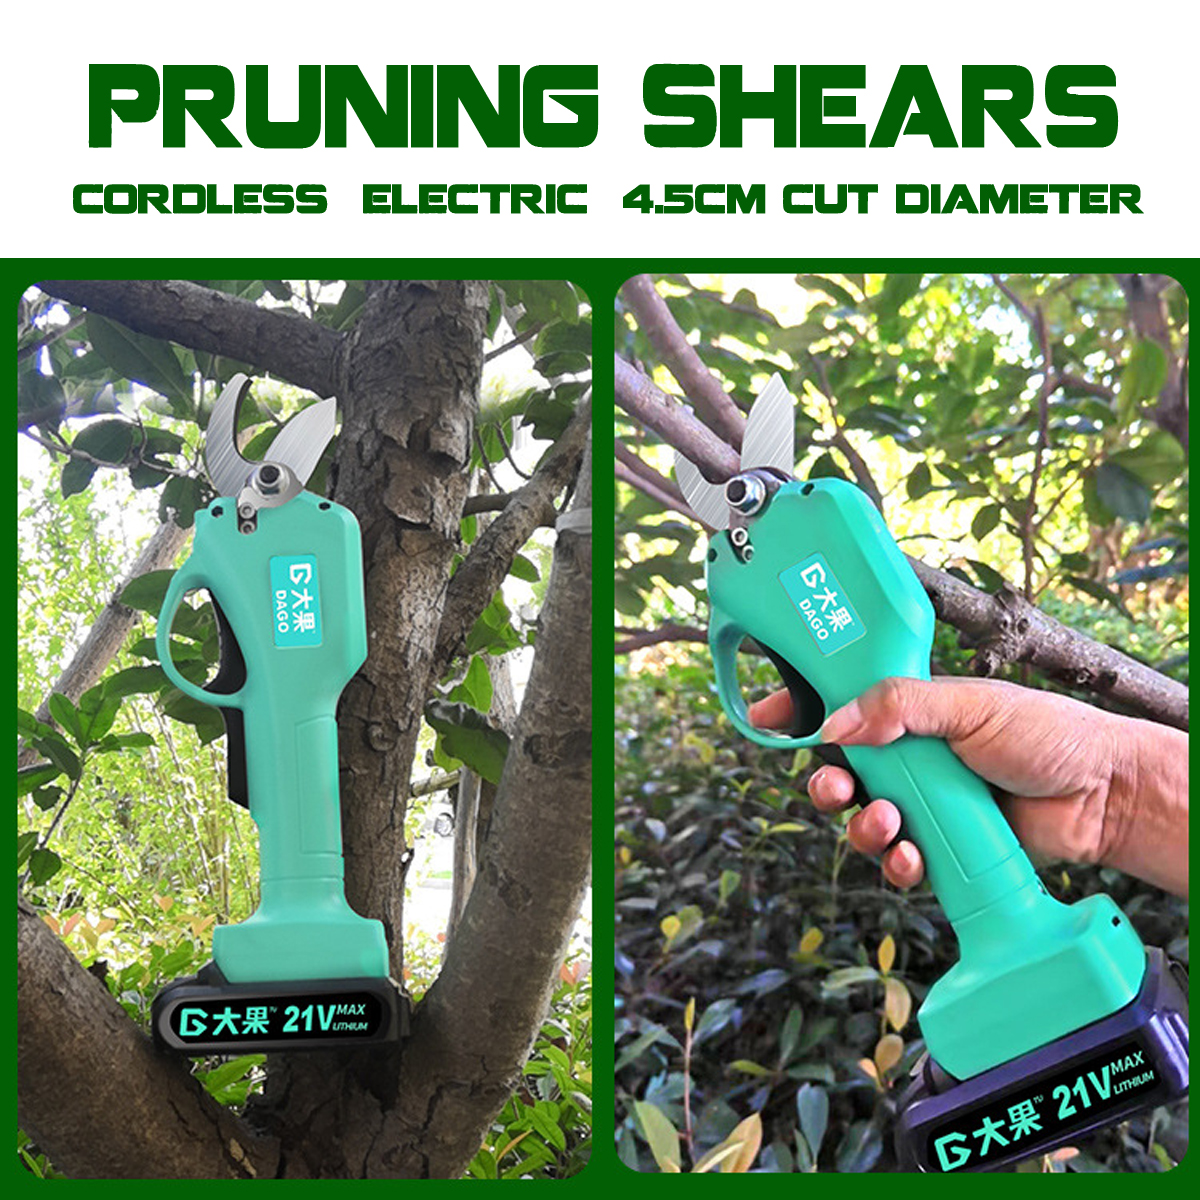 21V Wireless Electric Rechargeable Scissors Pruning Shears Tree Garden Tool Branches Pruning Tools W/1 Or 2 Li-ion Battery New